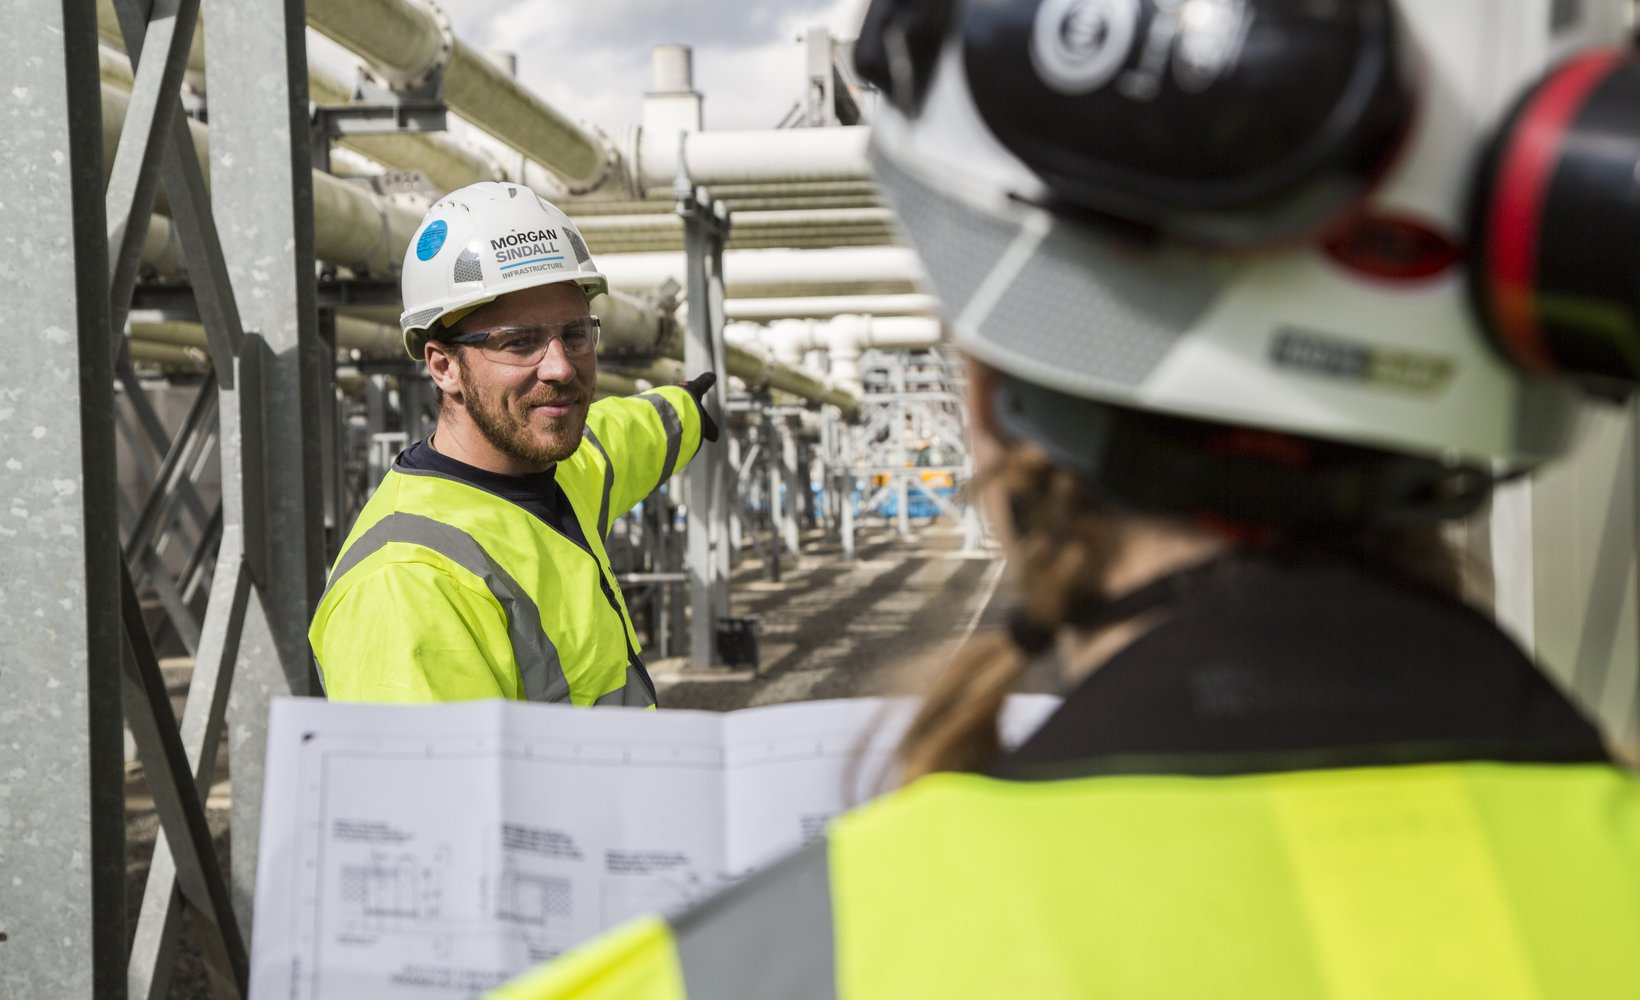 Two colleagues wearing are PPE having a conversation. One, facing us, is pointing at part of the site, where pipes are visible in the background. The other colleague has their head facing away from the camera. They are holding up a set of plans.